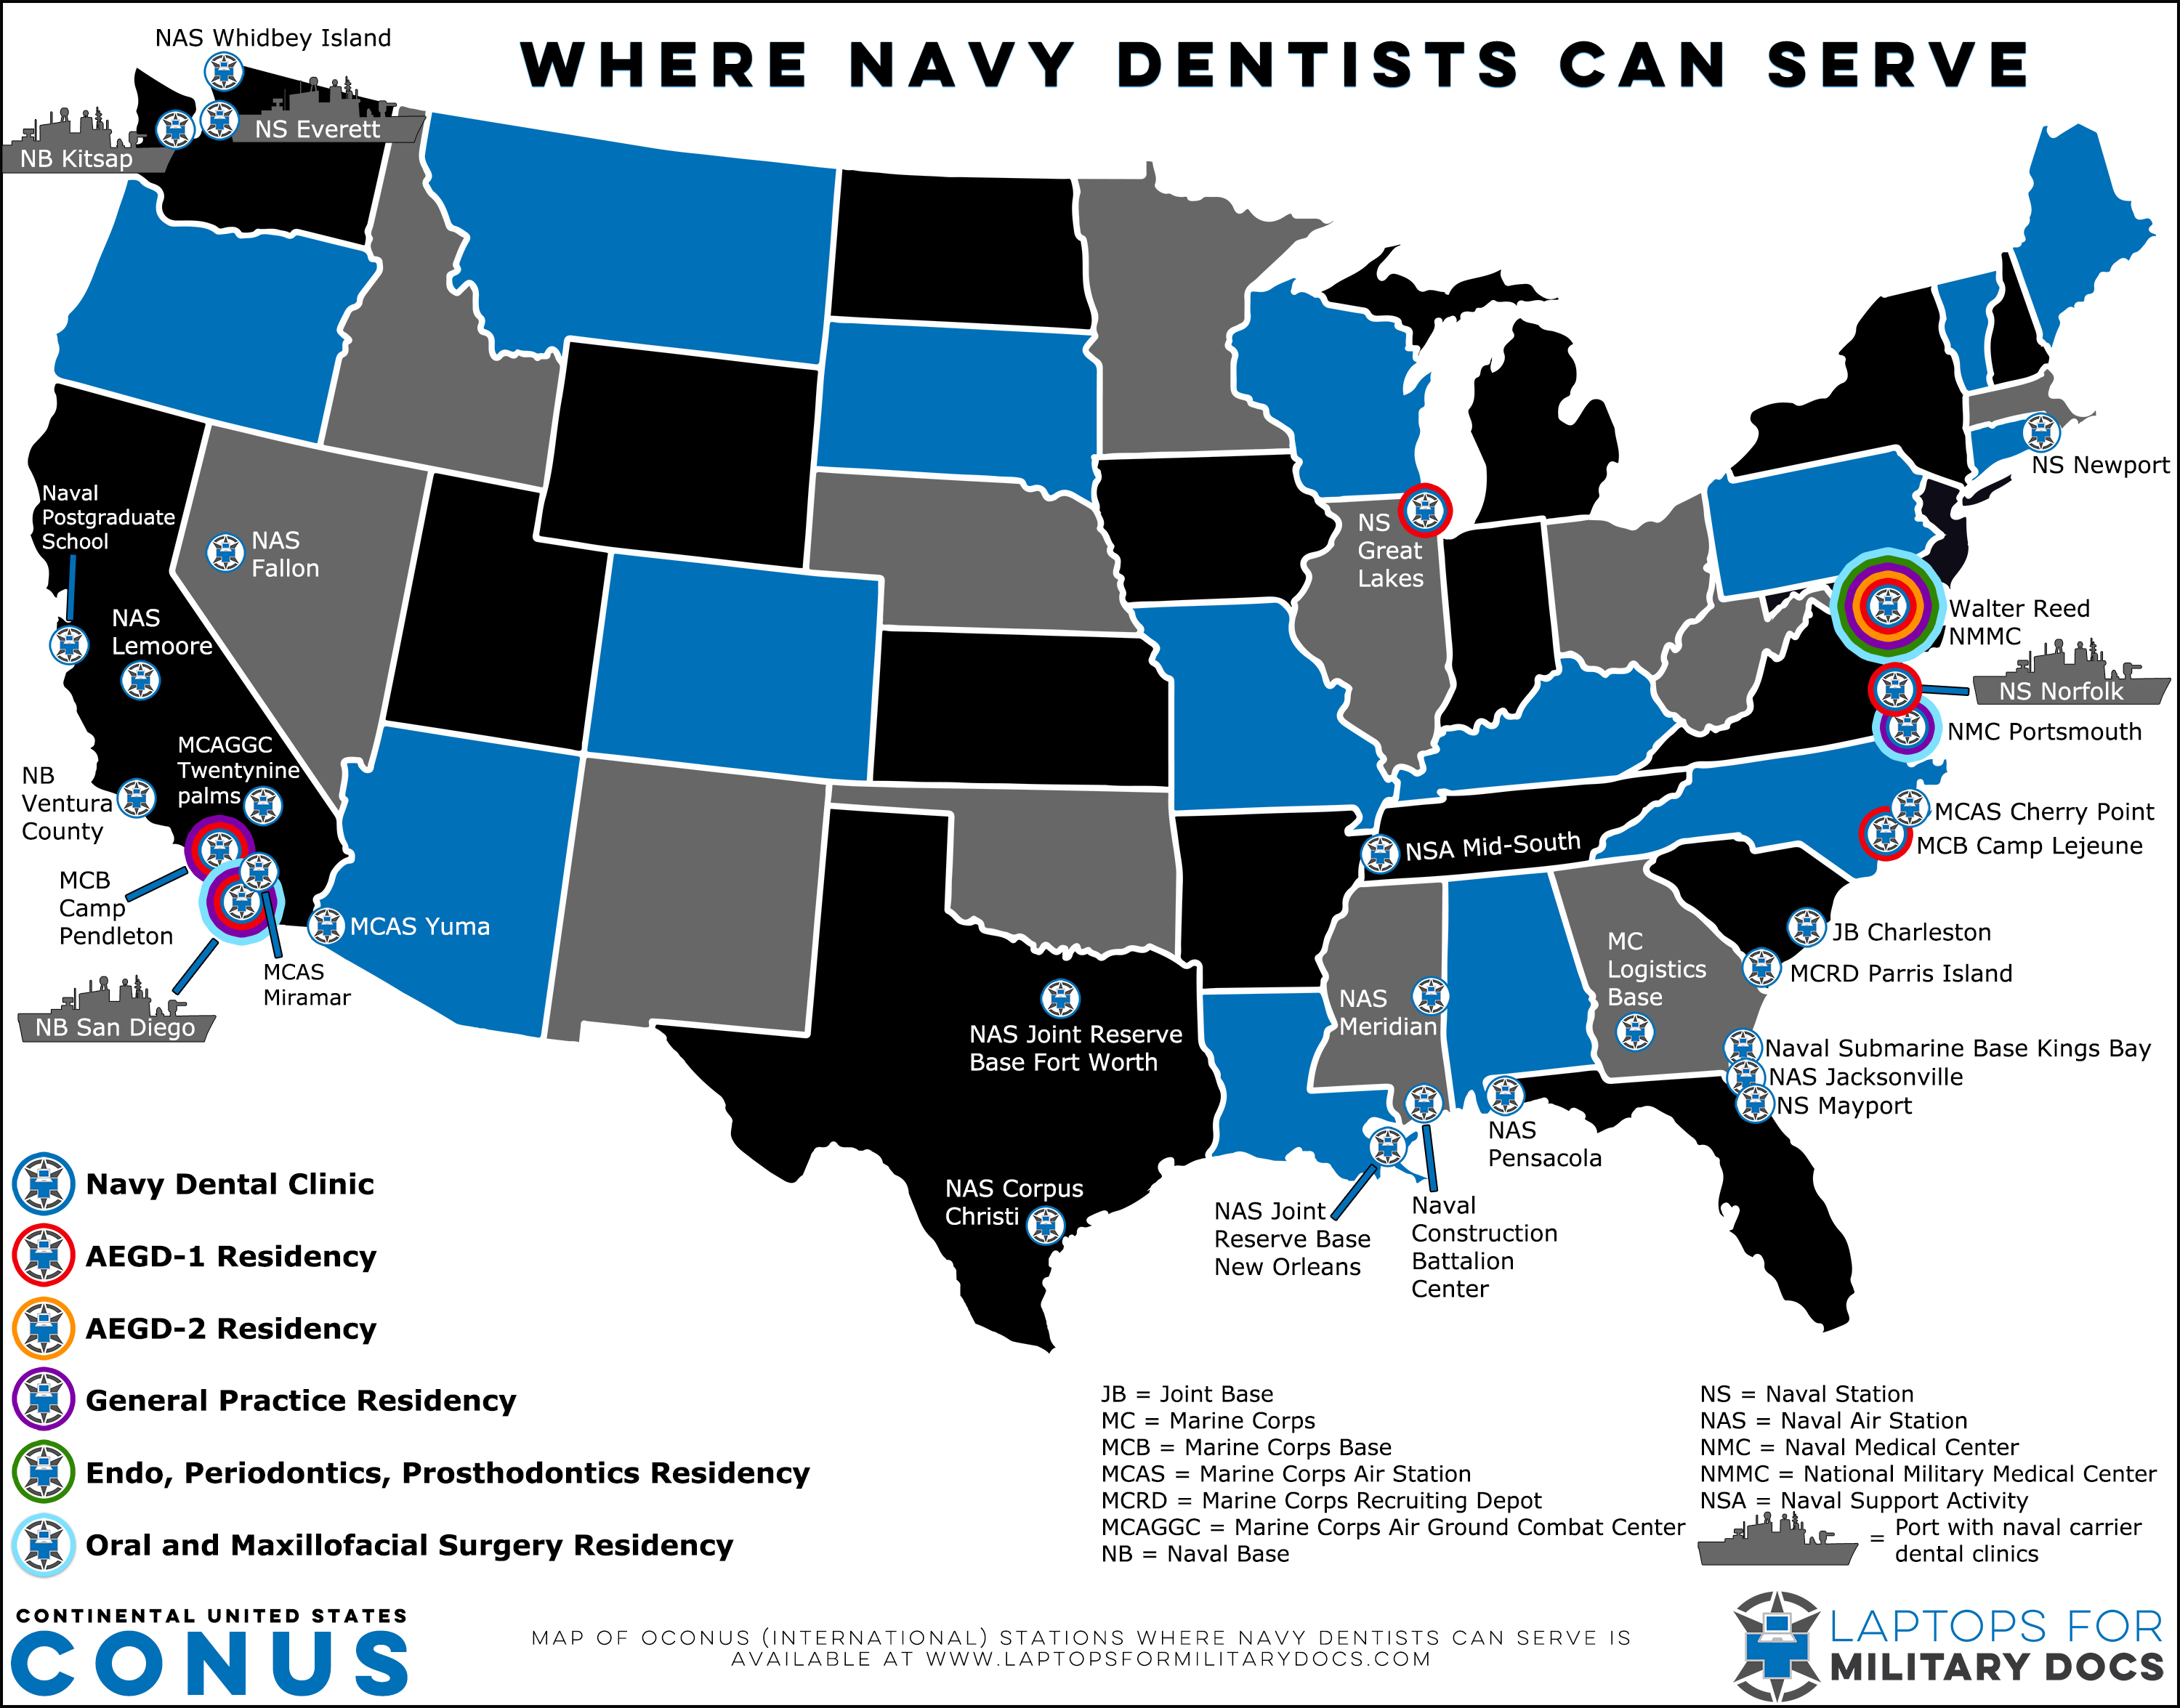 Map of Military Bases With Navy Dentists Inside the Continental United States